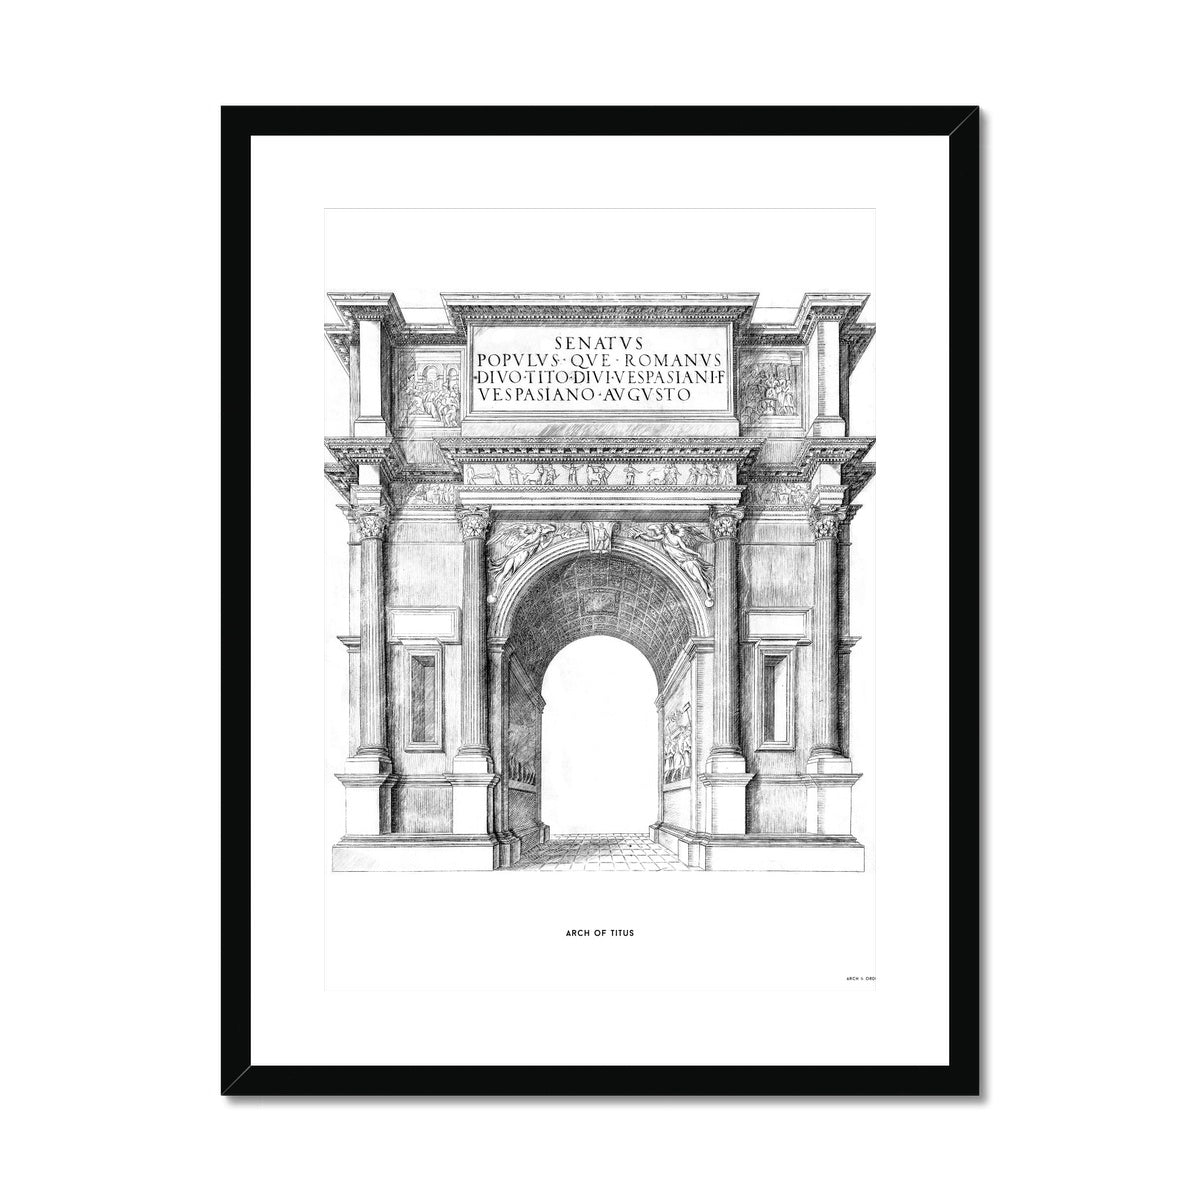 Arch of Titus - Rome - Italy